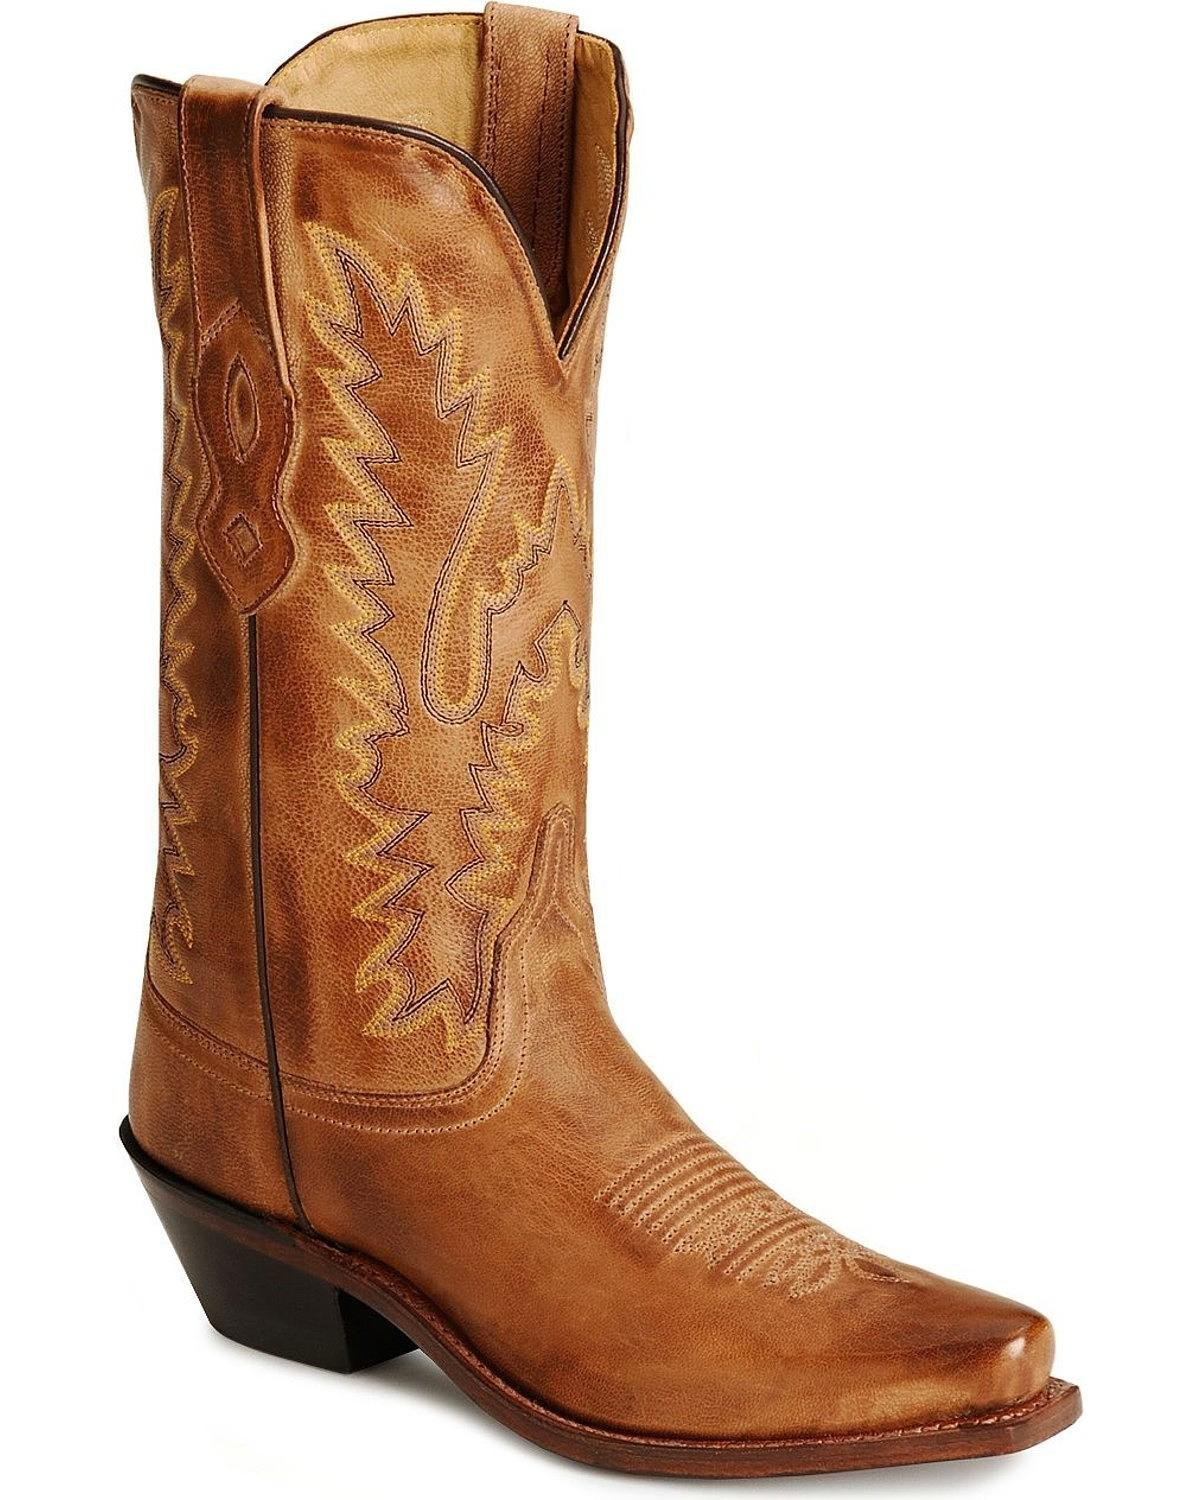 Old West Ladies Leather Fashion Cowgirl Boots B005OO266S 8.5 B(M) US|Tan